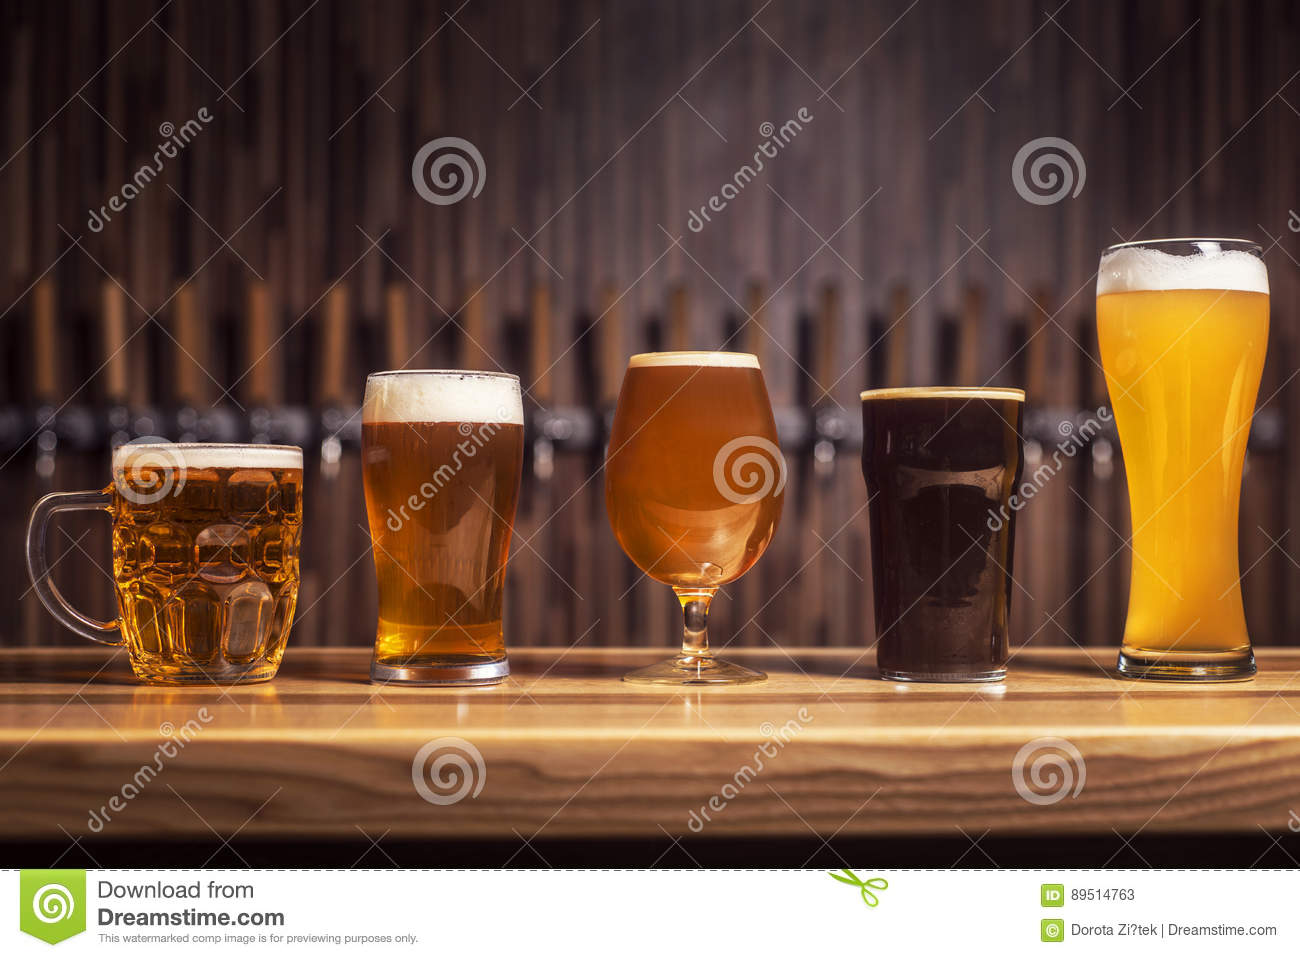 Several different beers are standing in a row at the bar